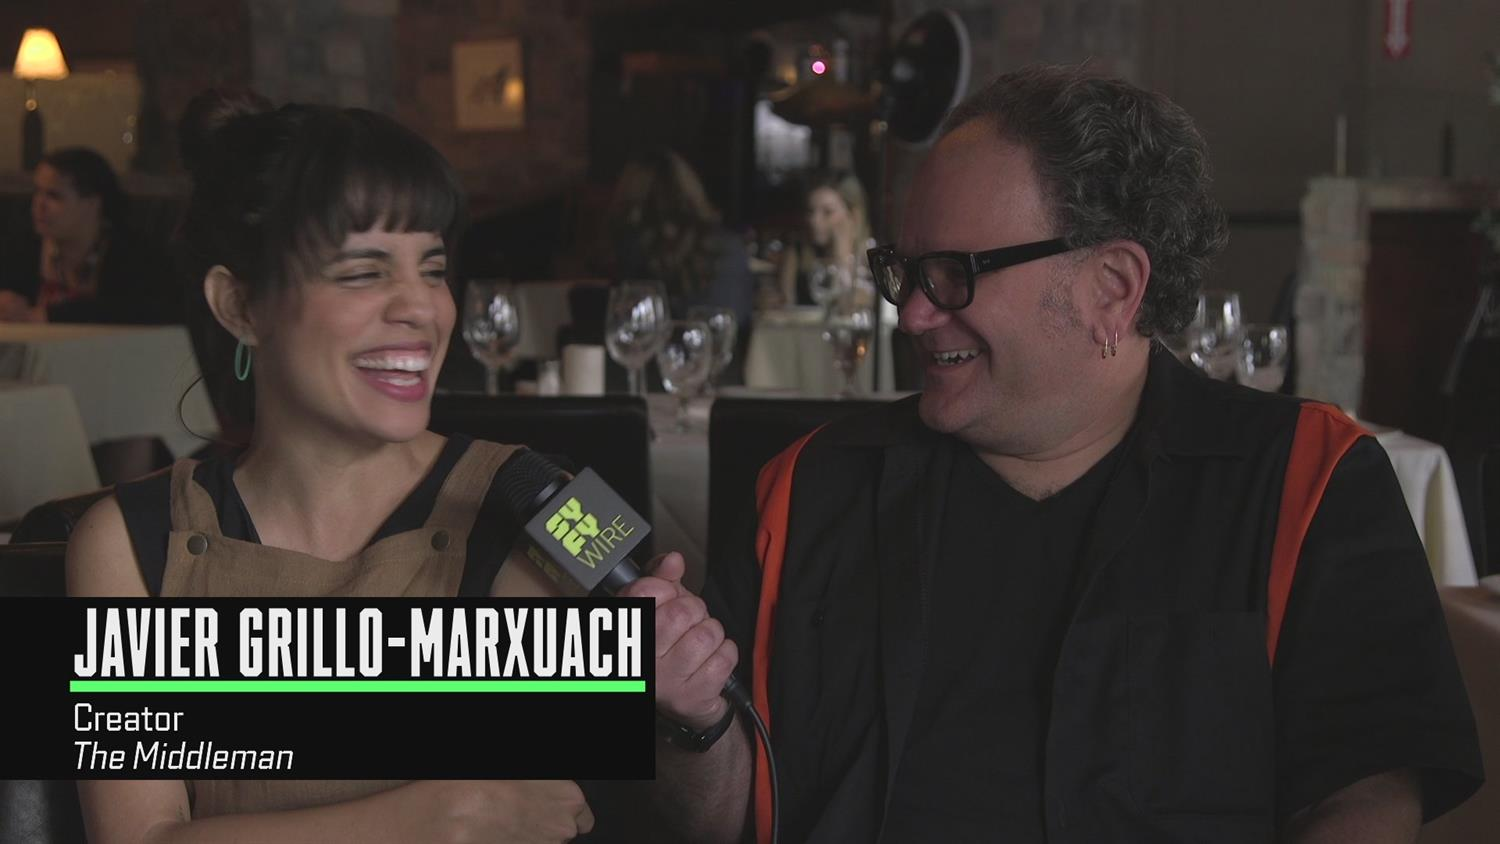 Natalie Morales and Javier Grillo-Marxuach: Lightning Round Questions